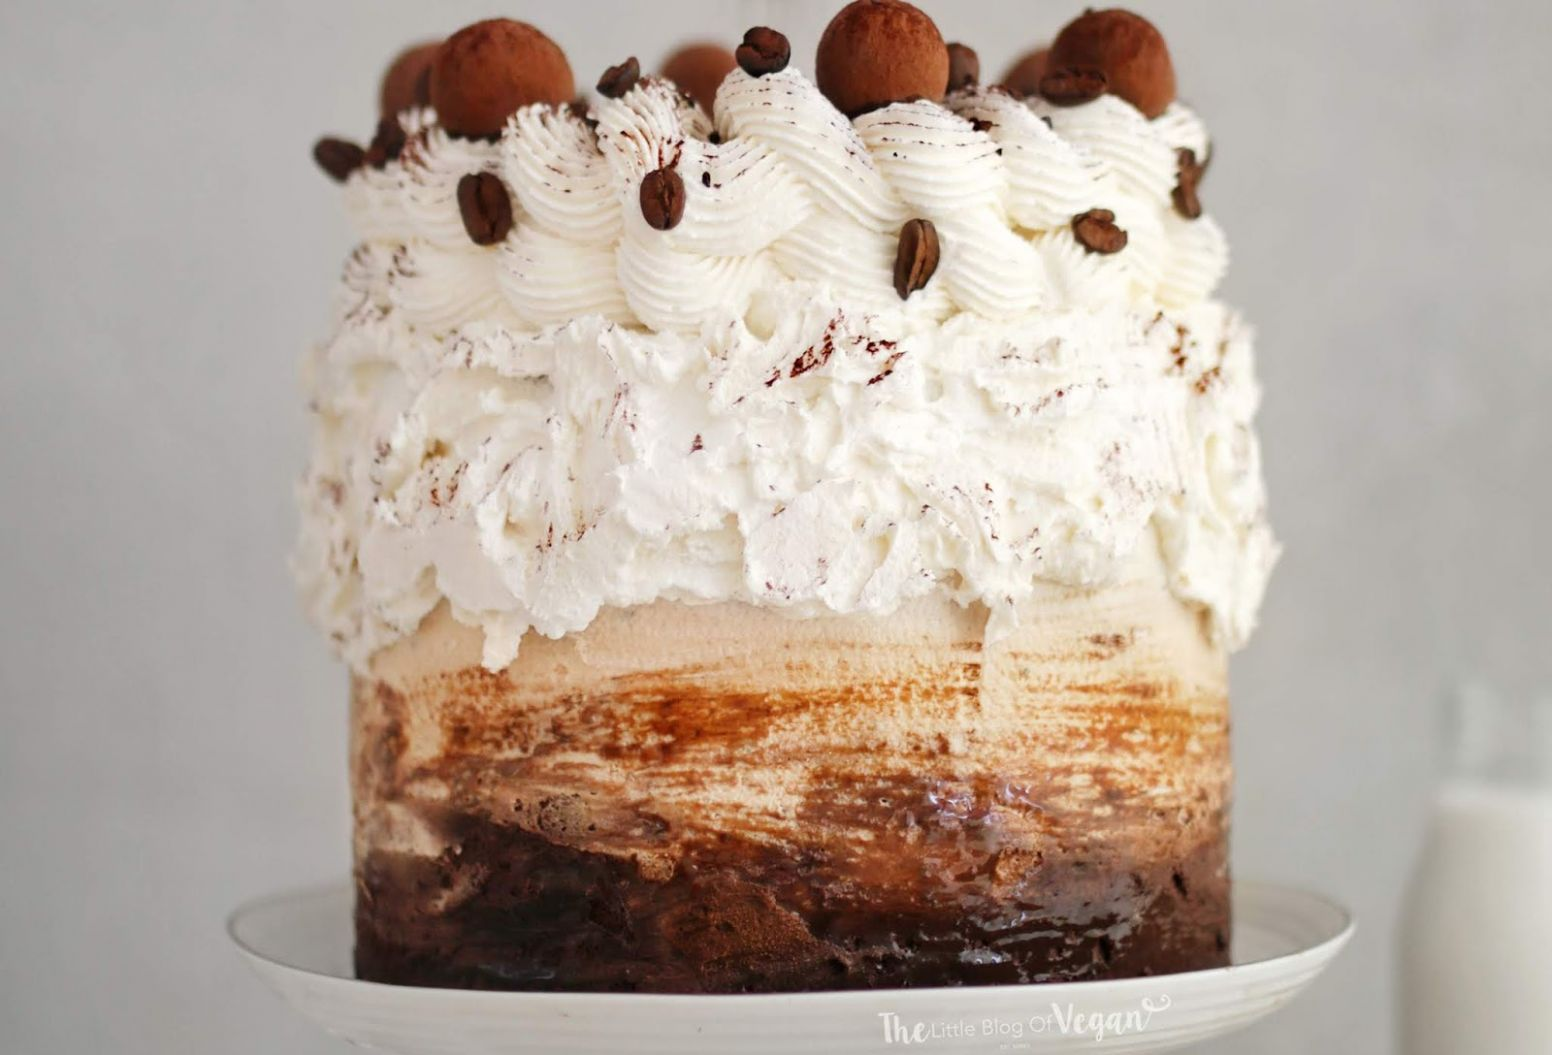 Coffee layer cake recipe | Ft Sproud | The Little Blog Of Vegan